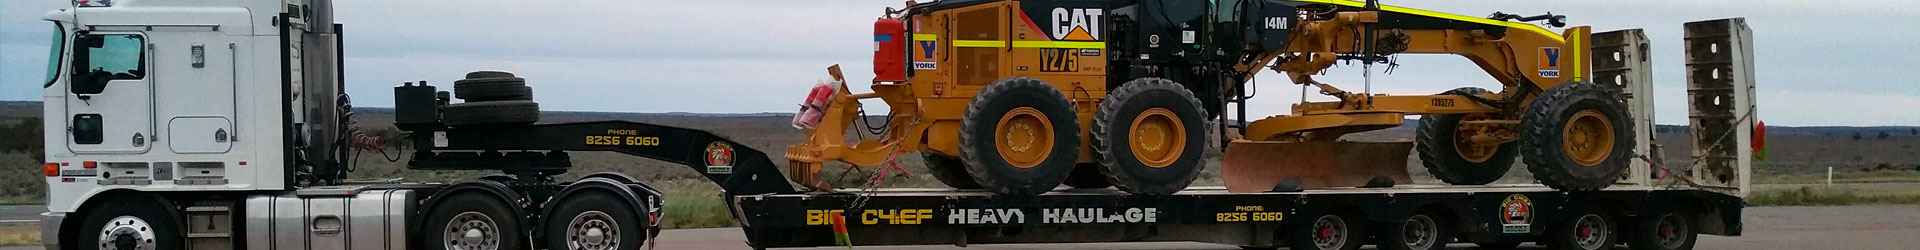 Big Chief Heavy Haulage Transport Truck with grader on trailer